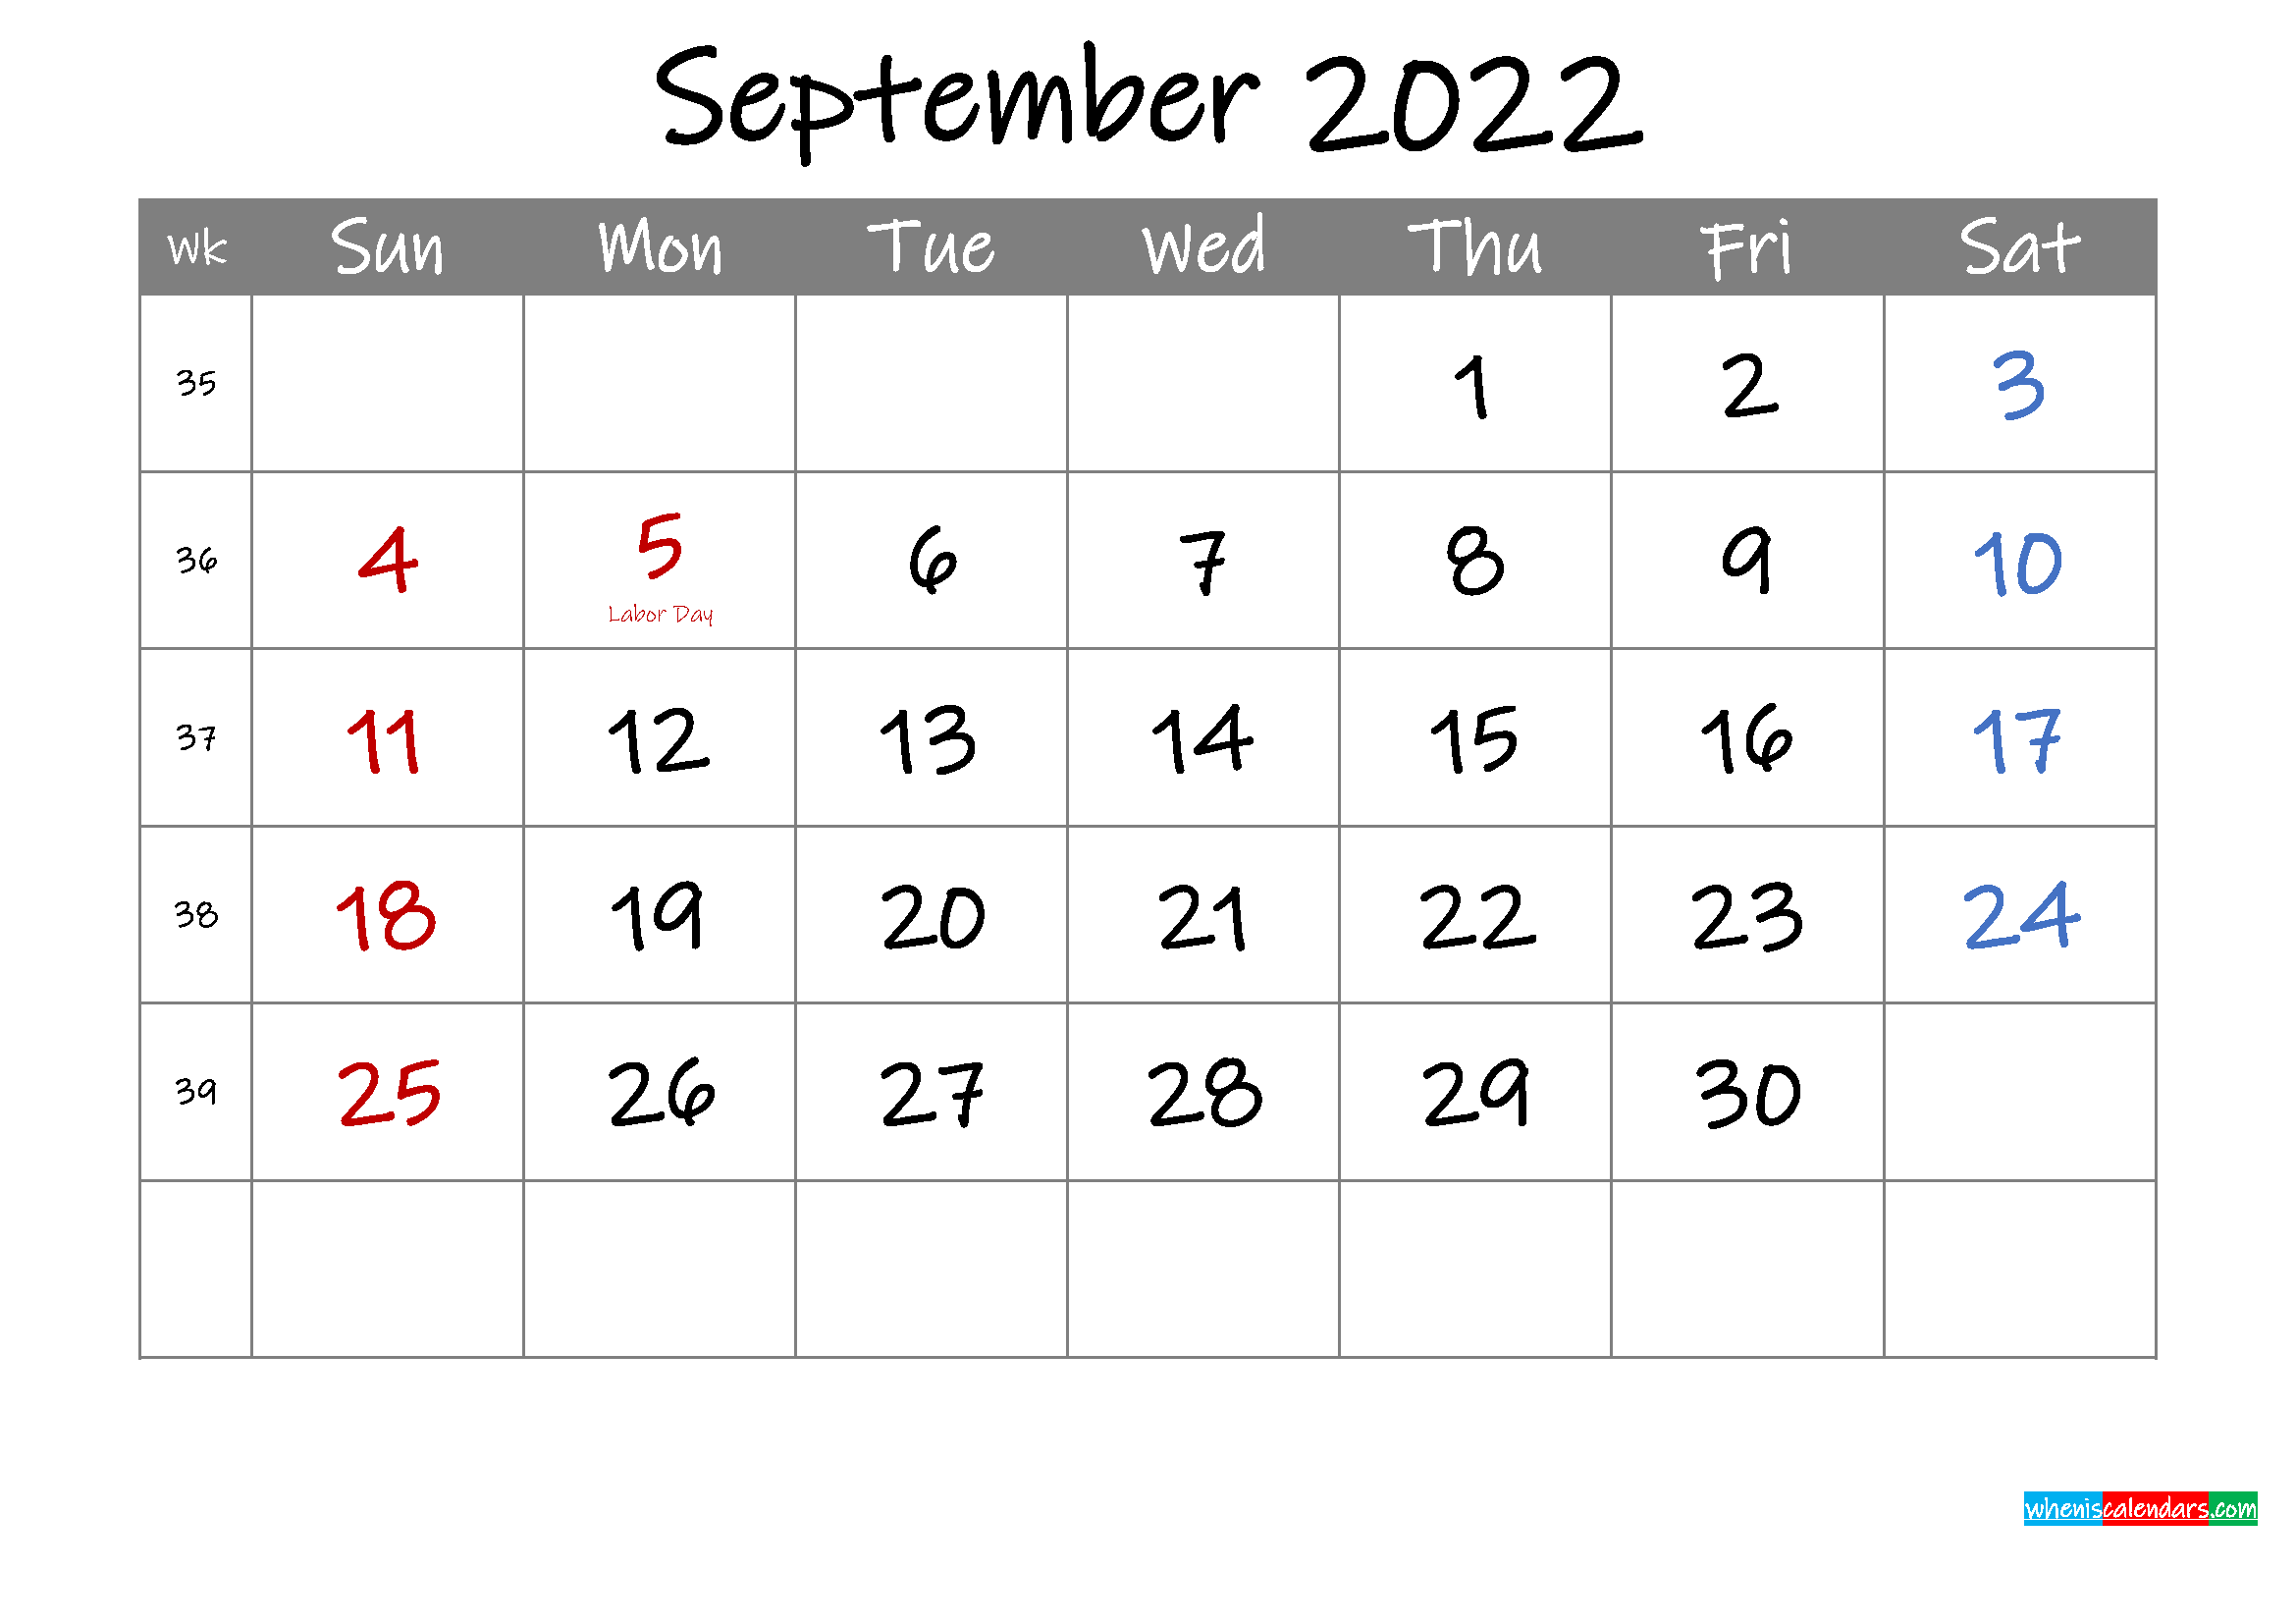 Editable September 2022 Calendar with Holidays - Template ...